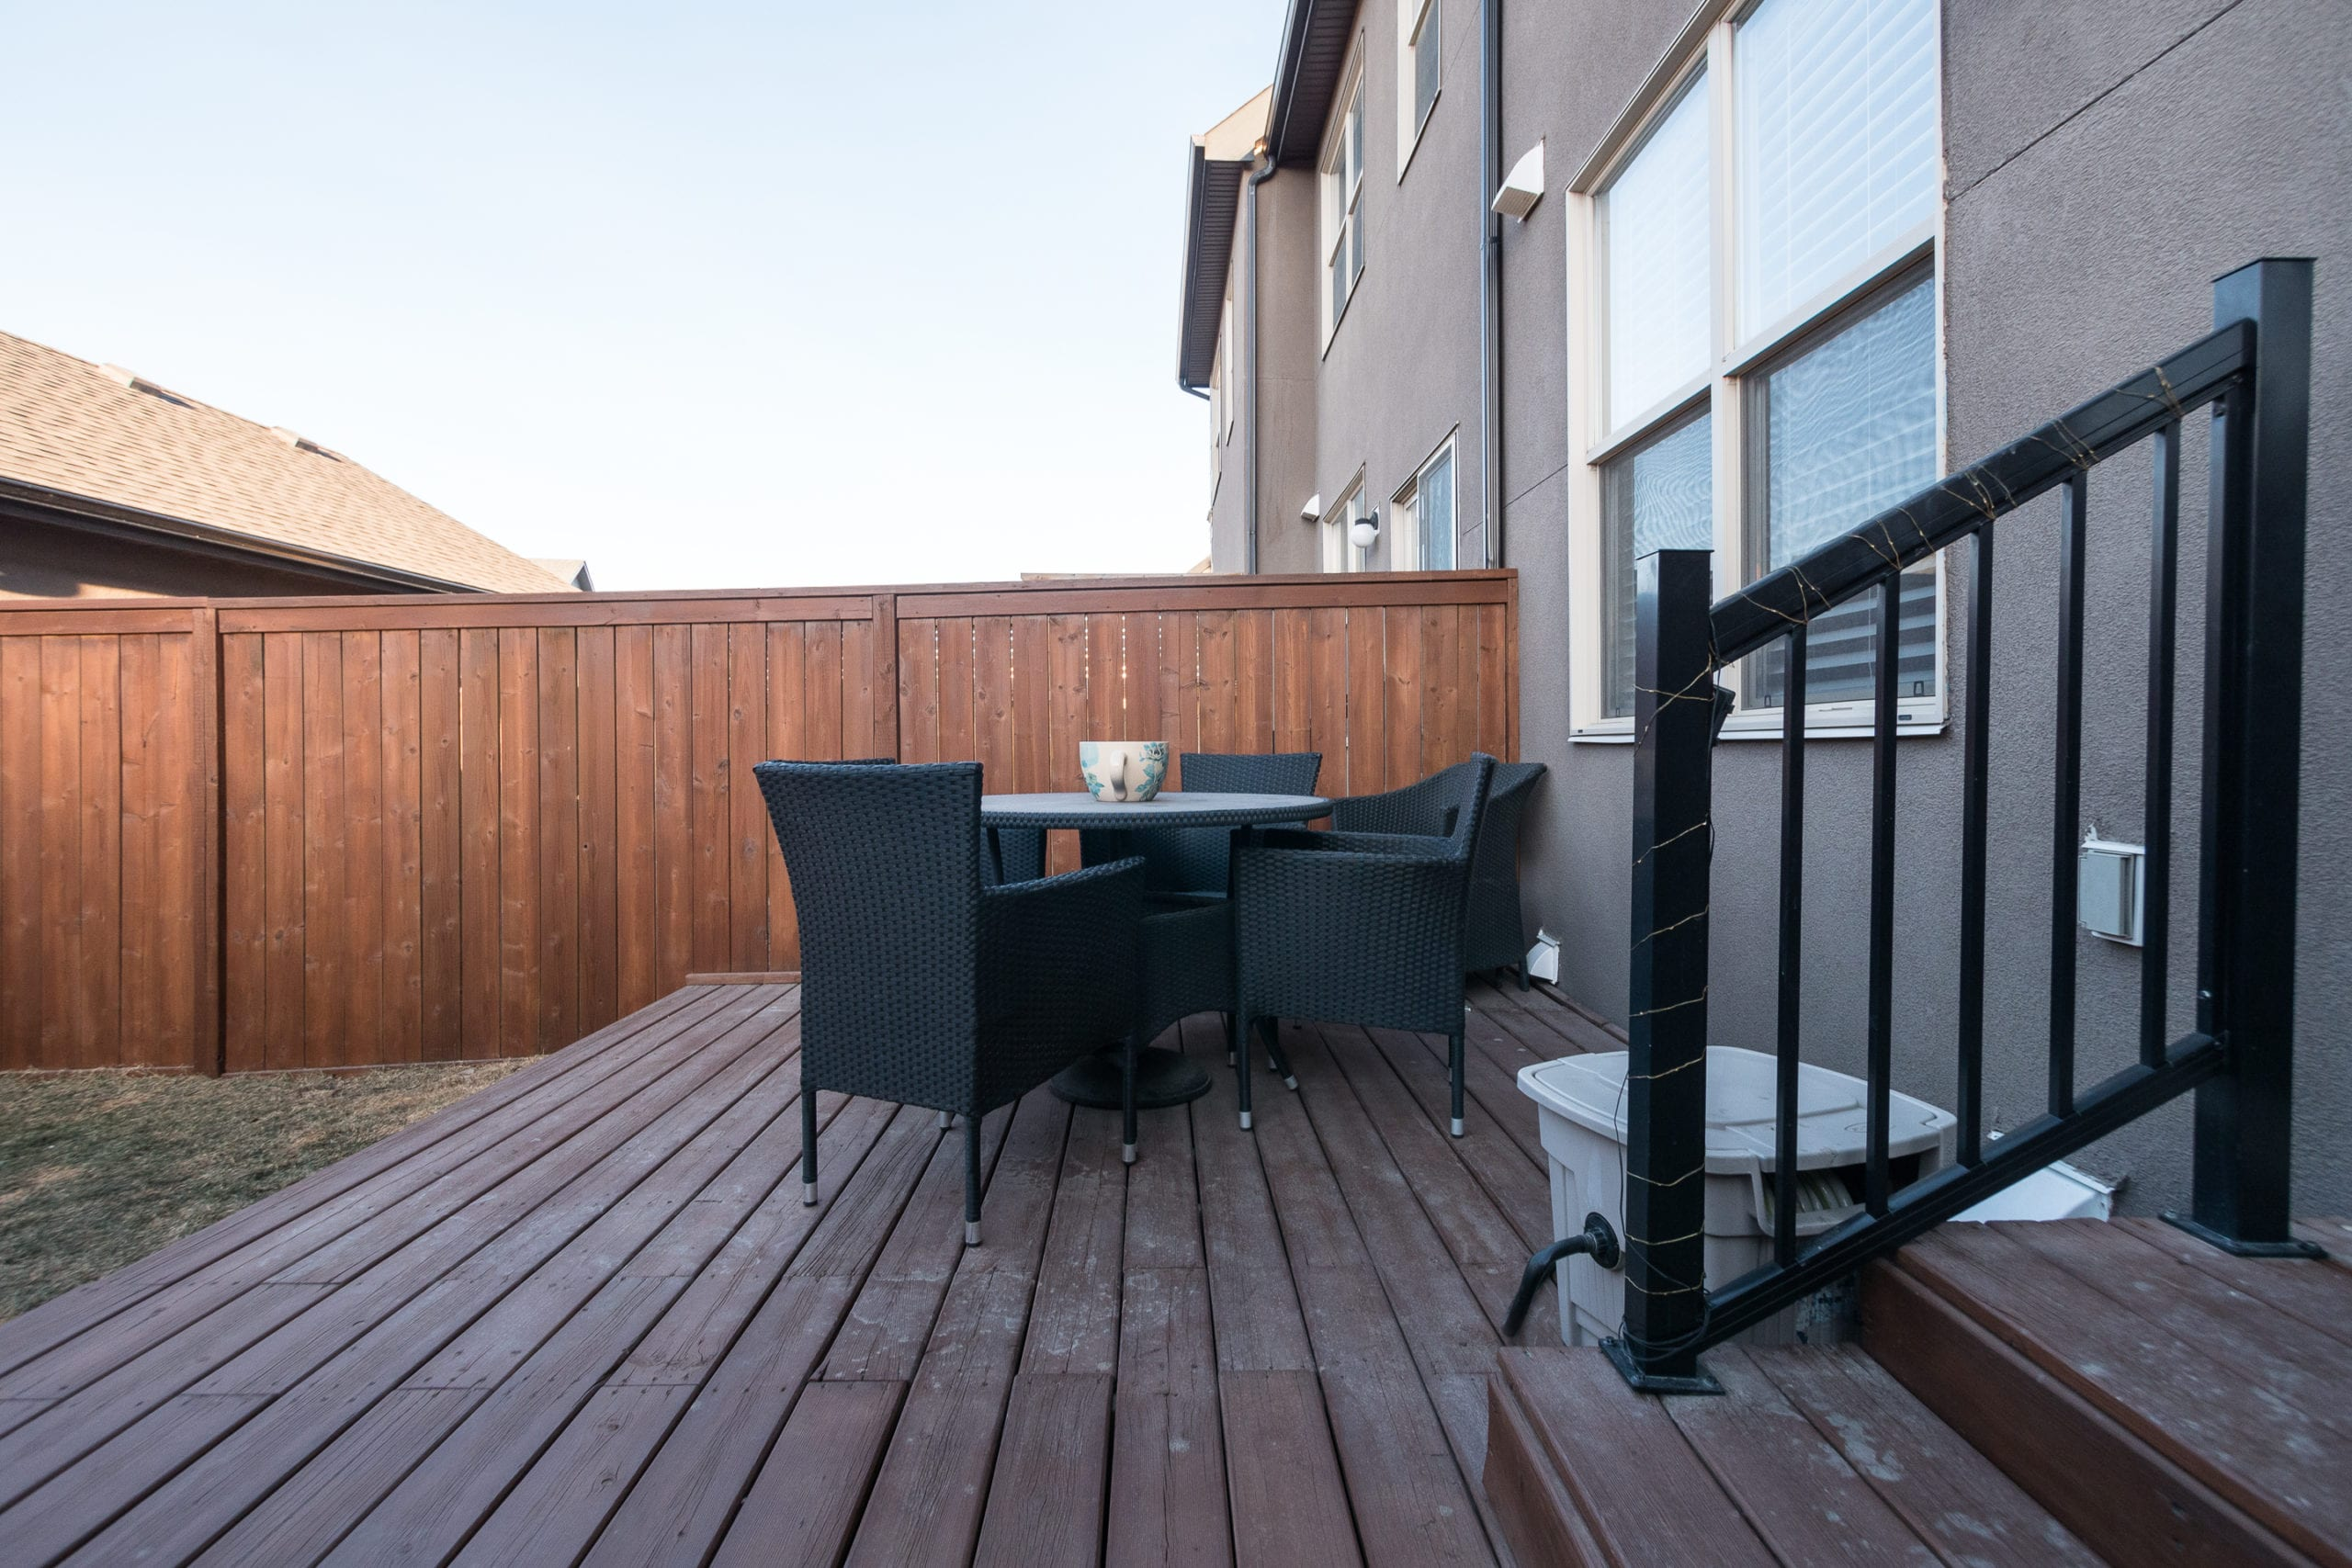 Hello Gorgeous - 61 Sage Meadows Terrace NW, Calgary AB - Tara Molina Real Estate (37 of 41)